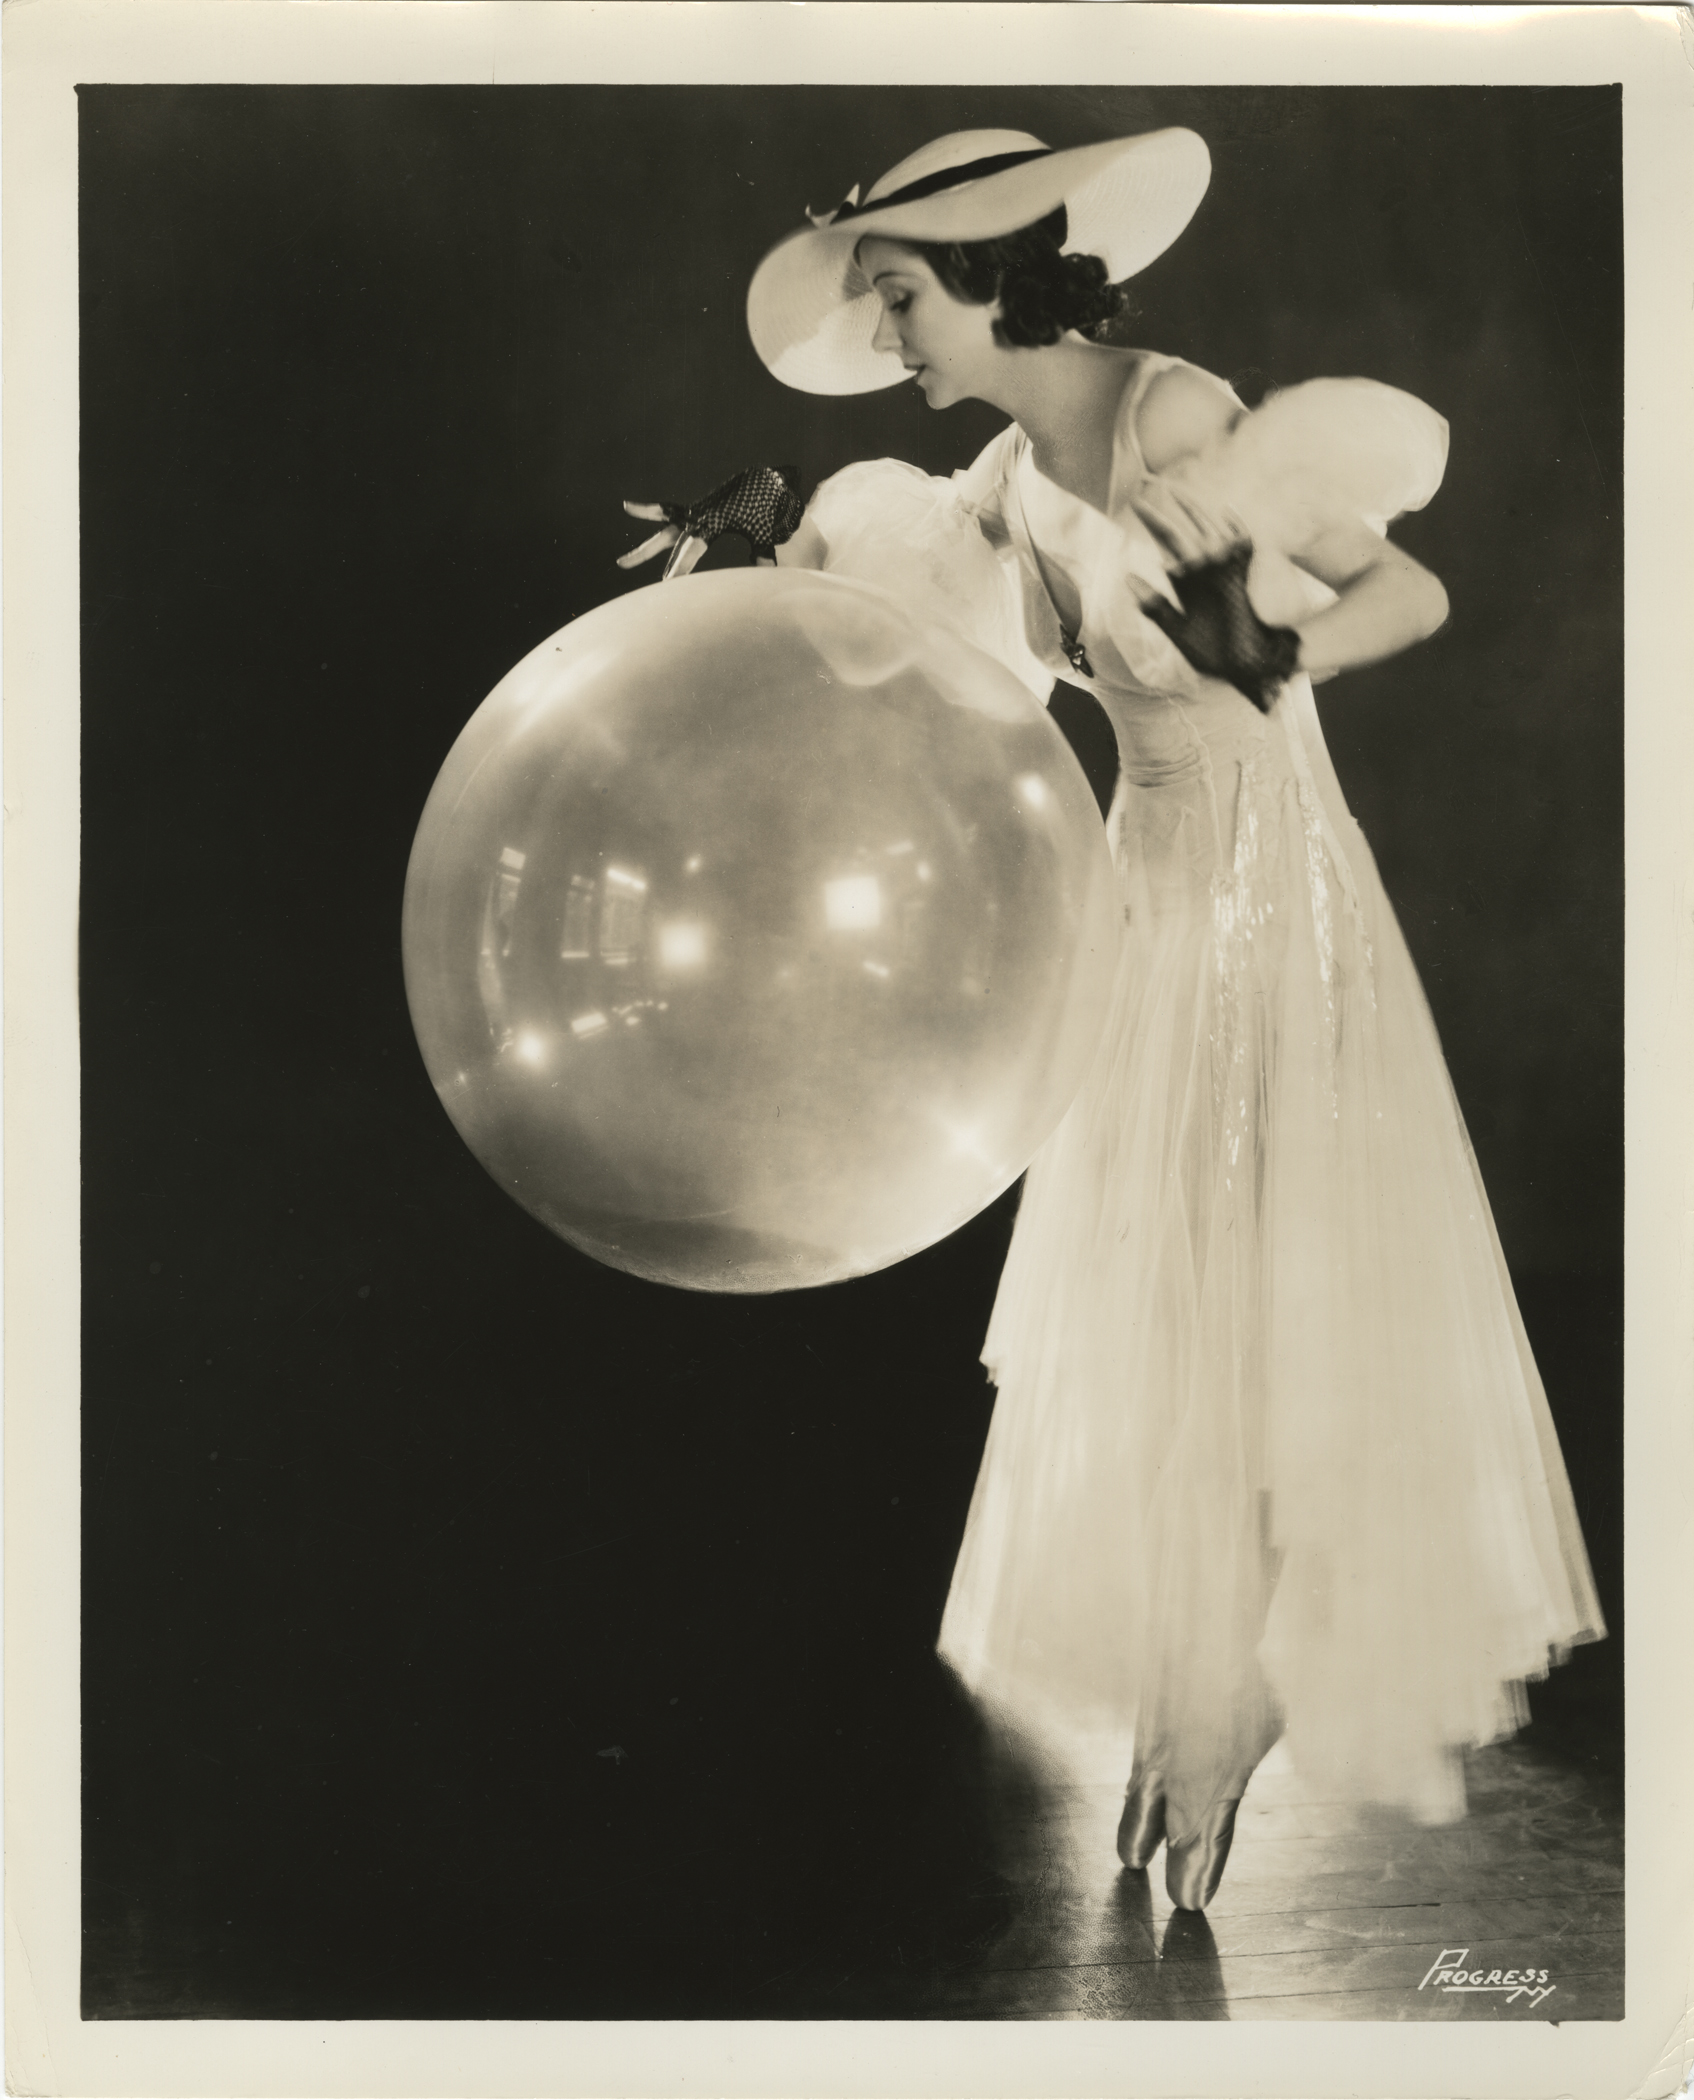 William Edward Elcha for Progress Studio. Helene Denizon with balloon, undated (ca. 1920s).